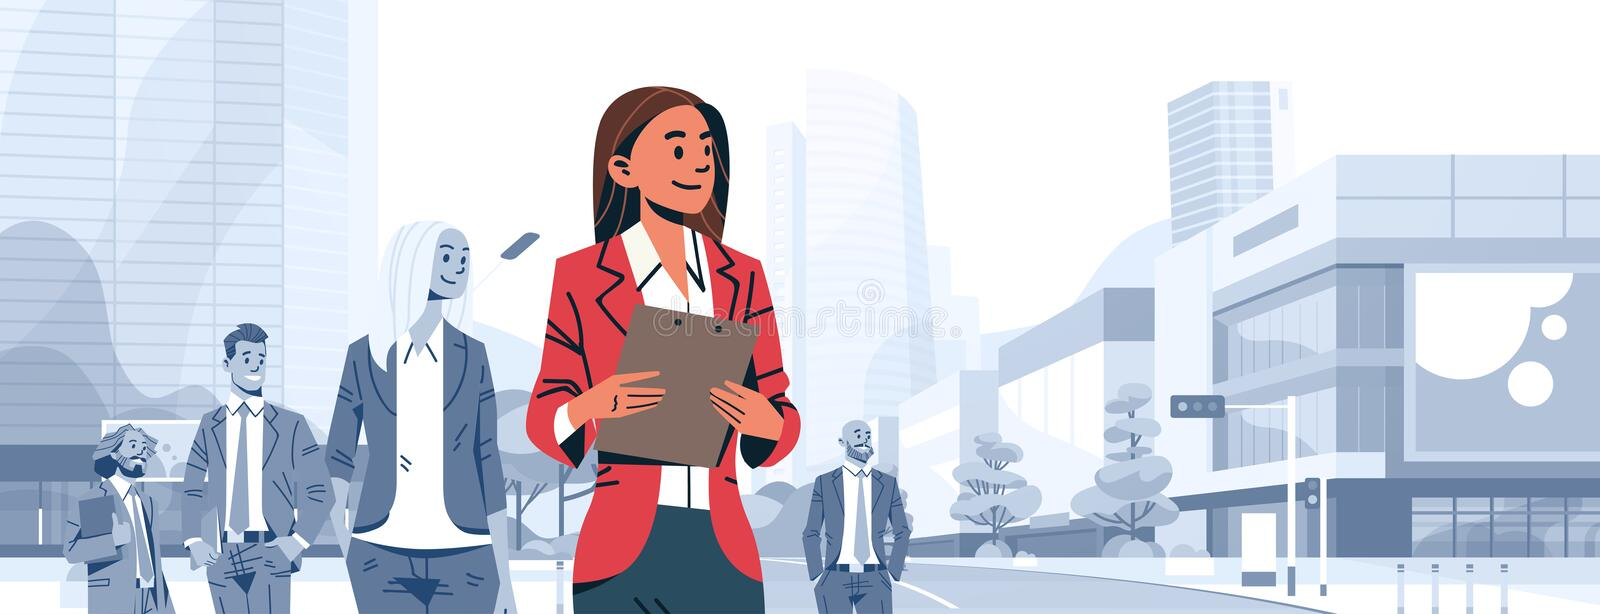 Businesswoman team leader boss stand out business people group individual leadership concept female cartoon character. Portrait cityscape background horizontal stock illustration